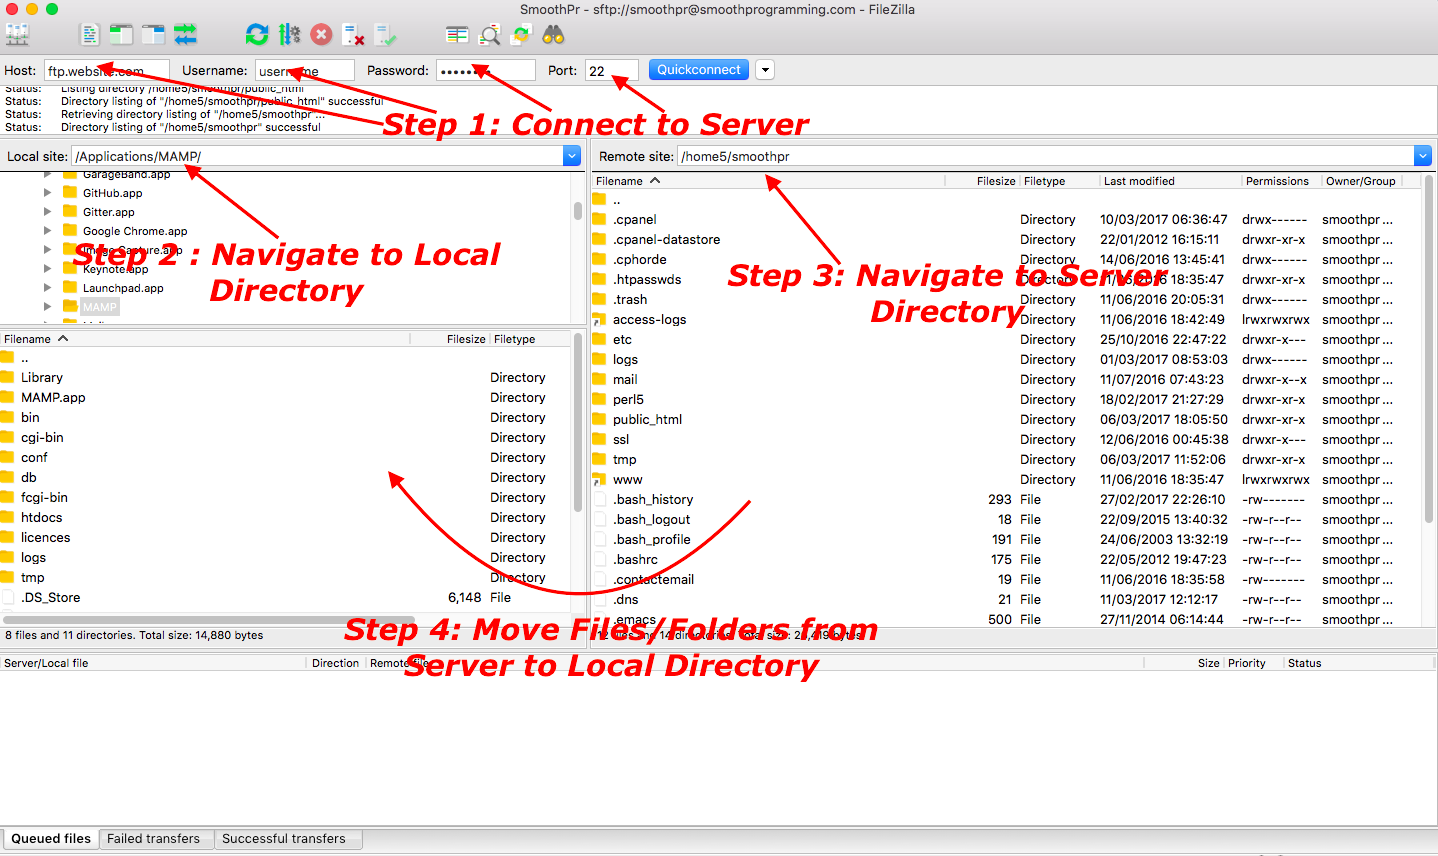 Transfer files between client and server using FileZilla